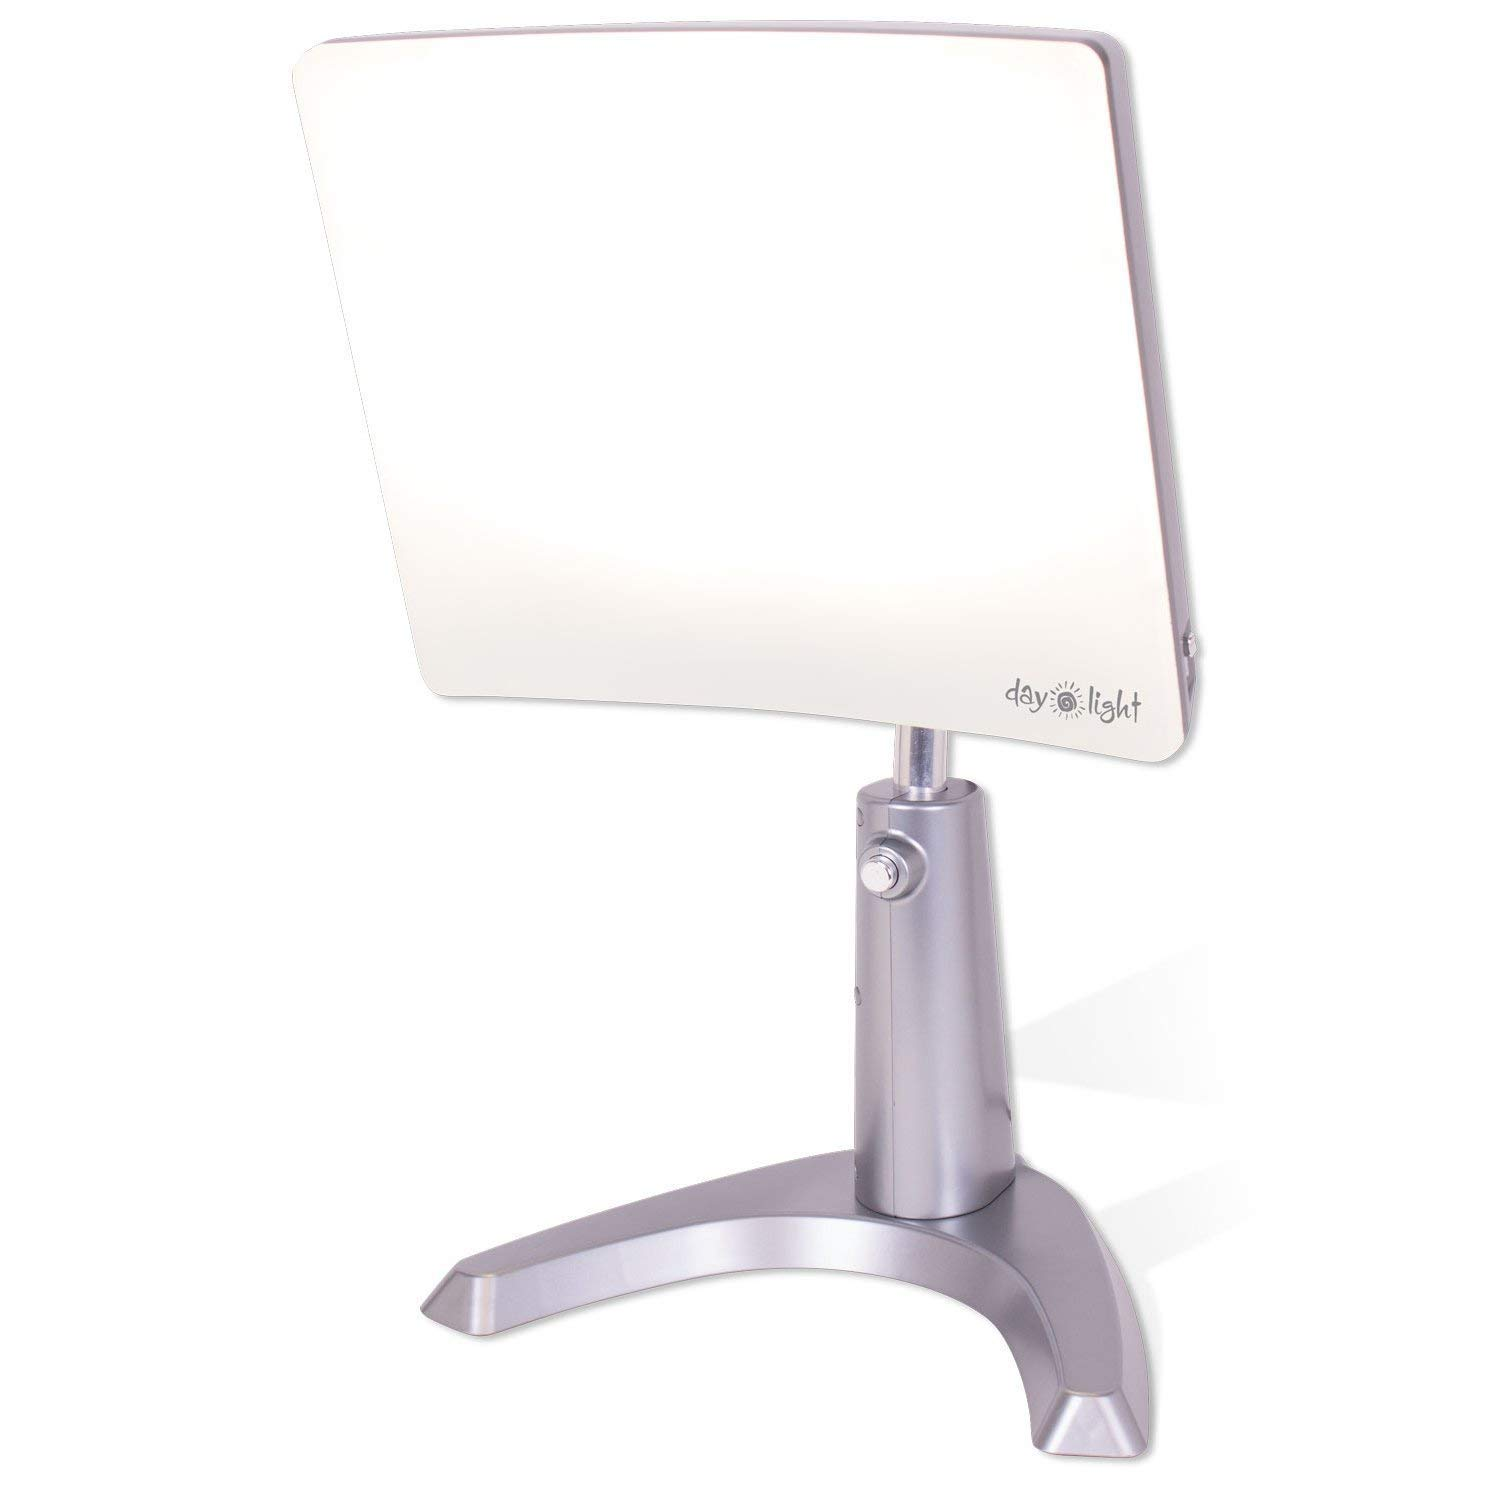 Carex Day-light light therapy light